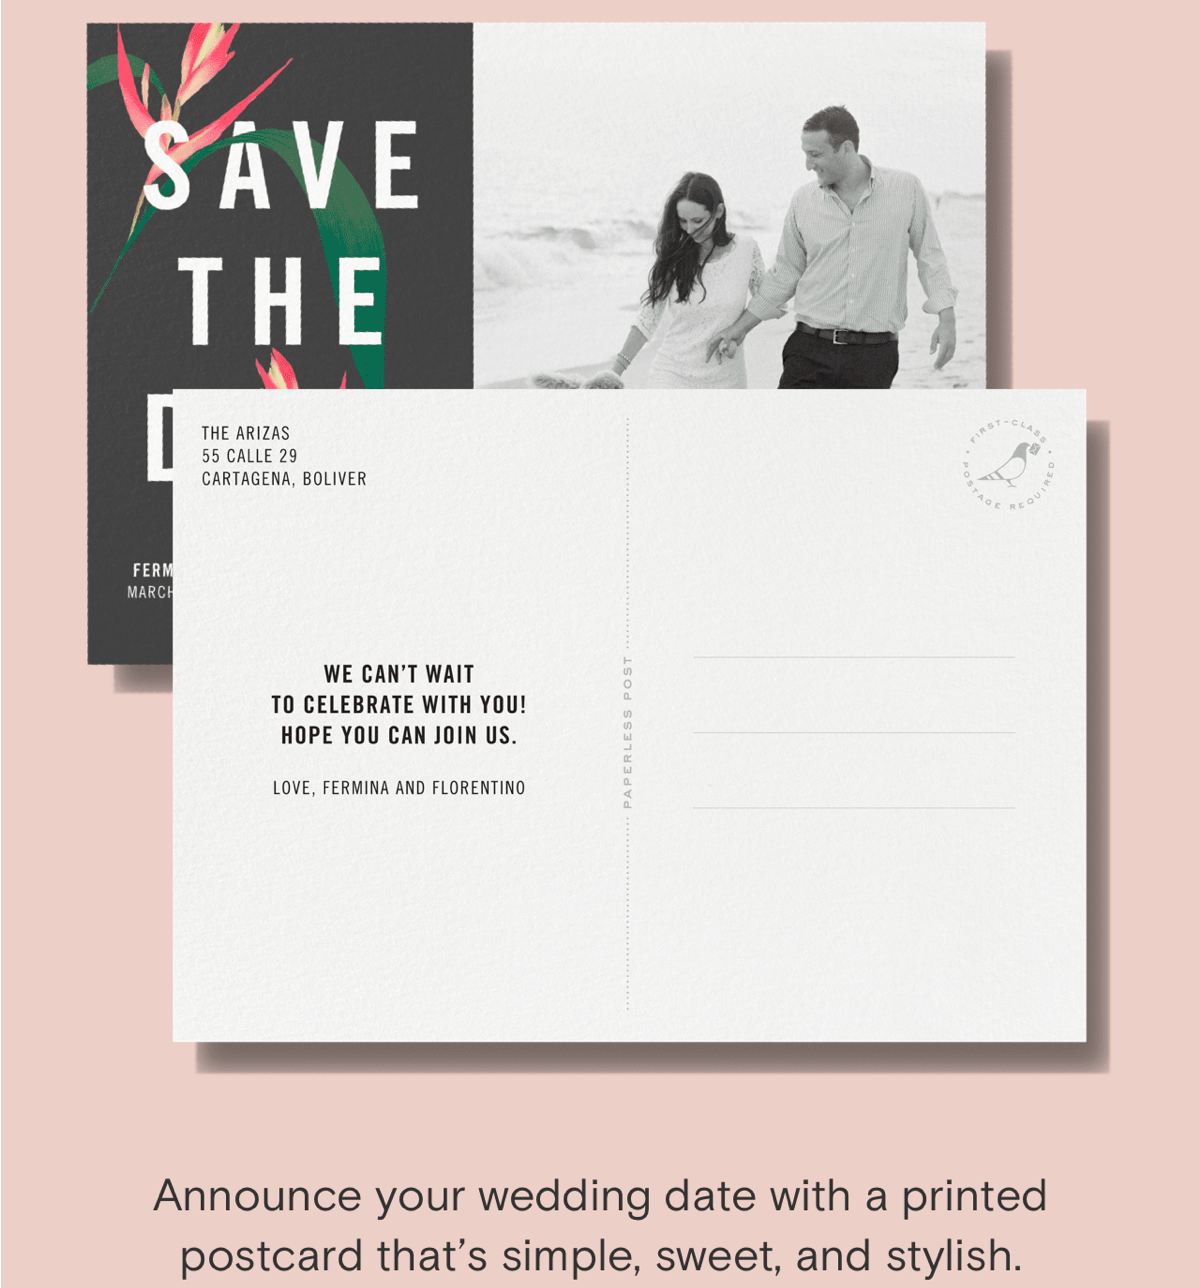 Announce your wedding date with a printed postcard that's simple, sweet, and stylish.